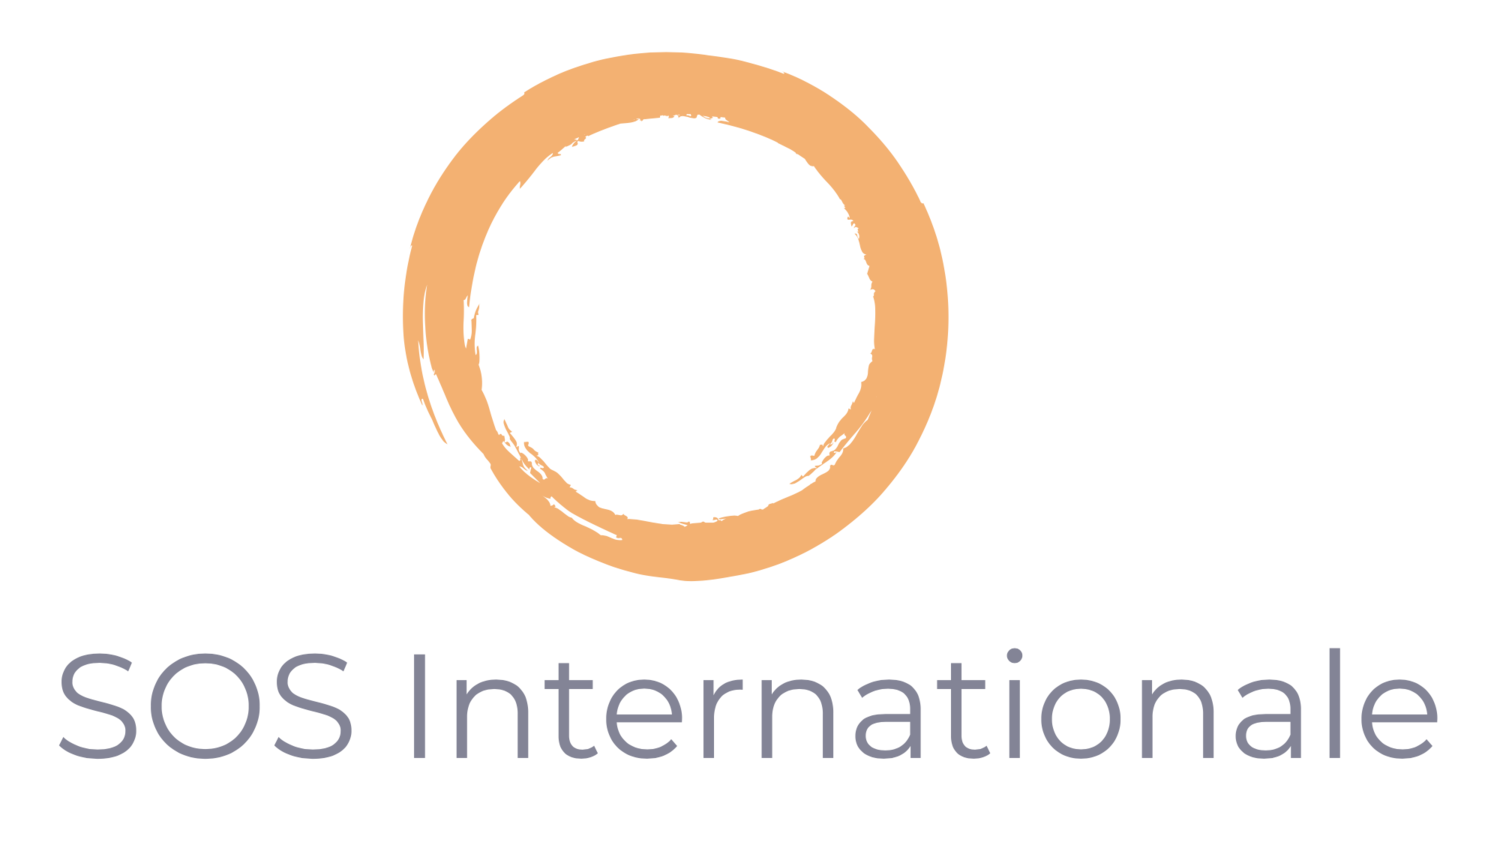 SOS Internationale (Somatic Experiencing Training®)